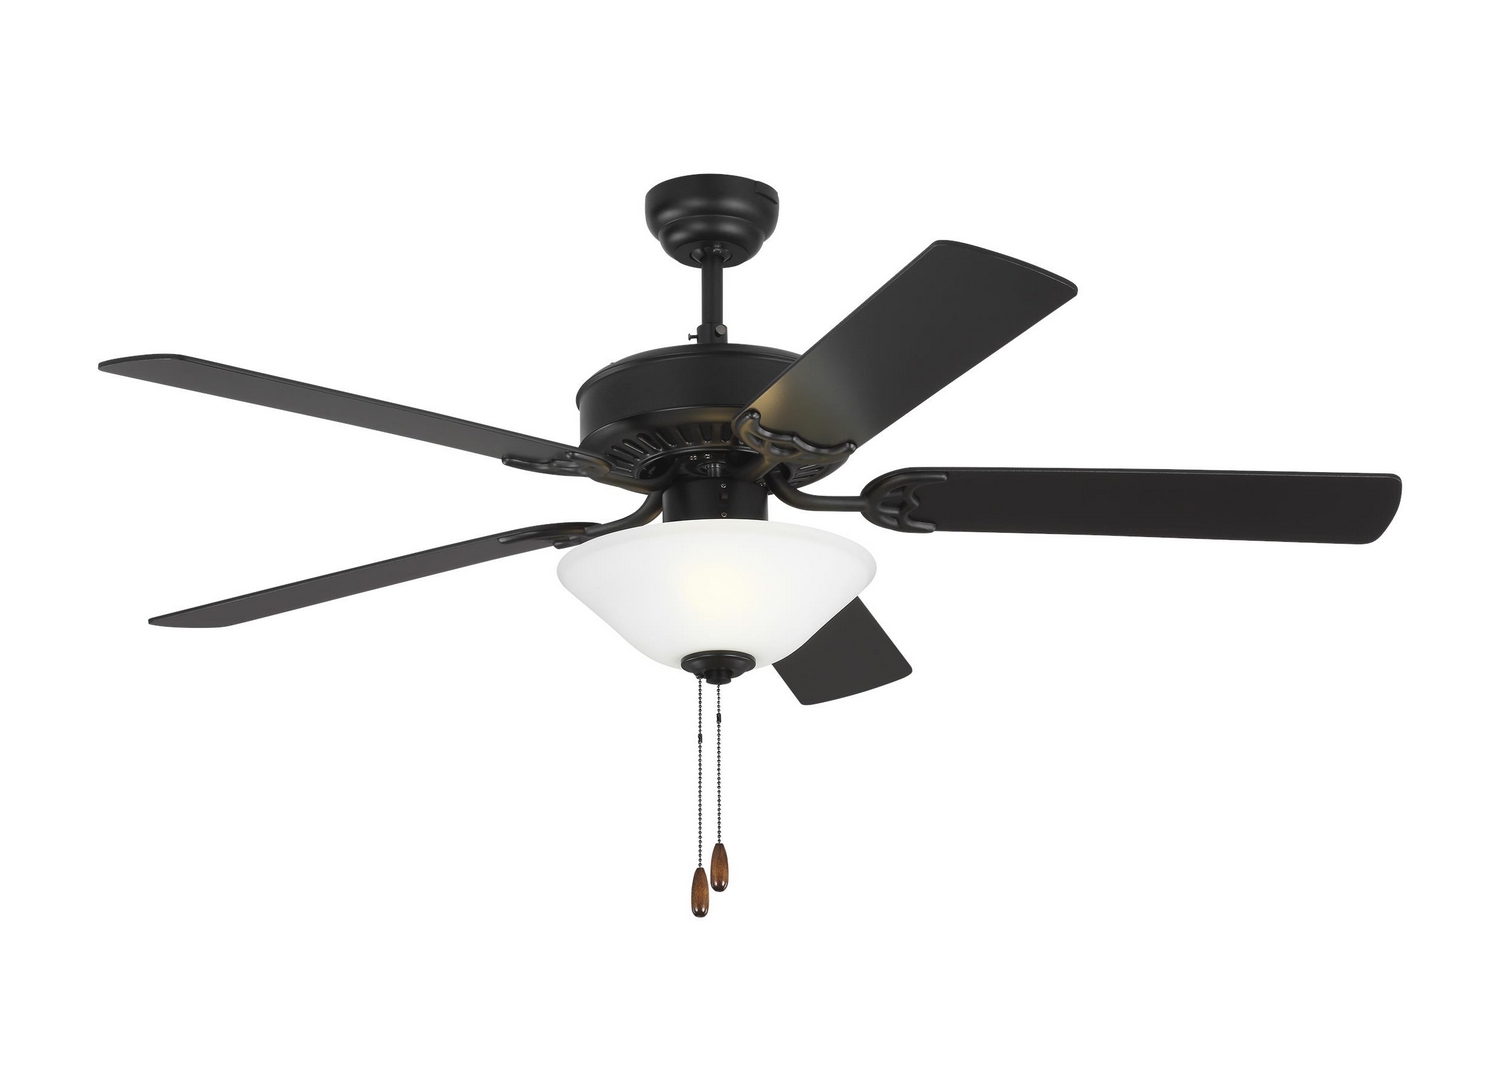 52 inchCeiling Fan from the Haven 52 LED 2 collection by Monte Carlo 5HV52BKD